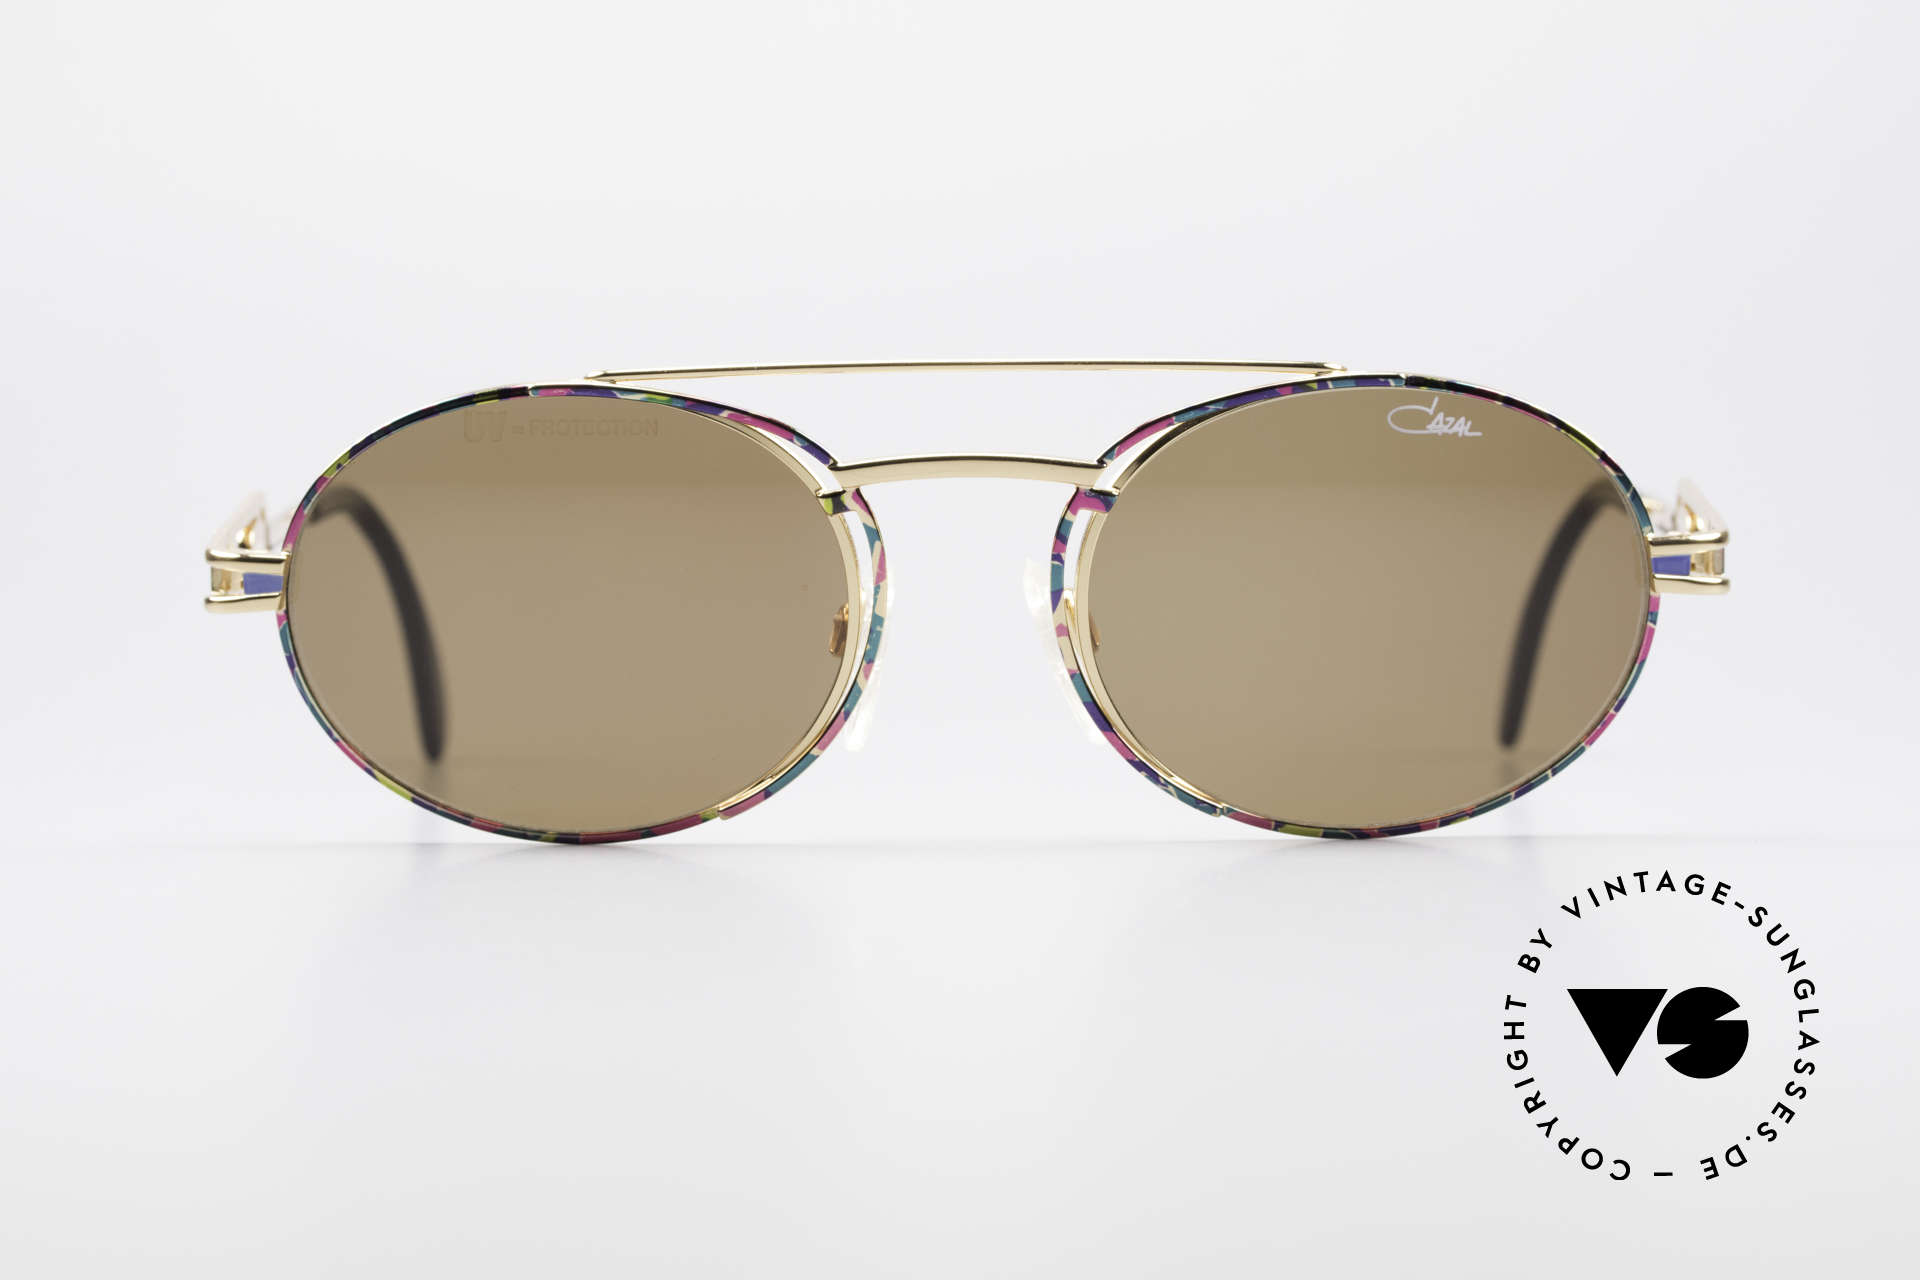 Cazal 965 90's Steampunk Style Shades, frame is reminiscent of 'industrial/steampunk' design, Made for Men and Women